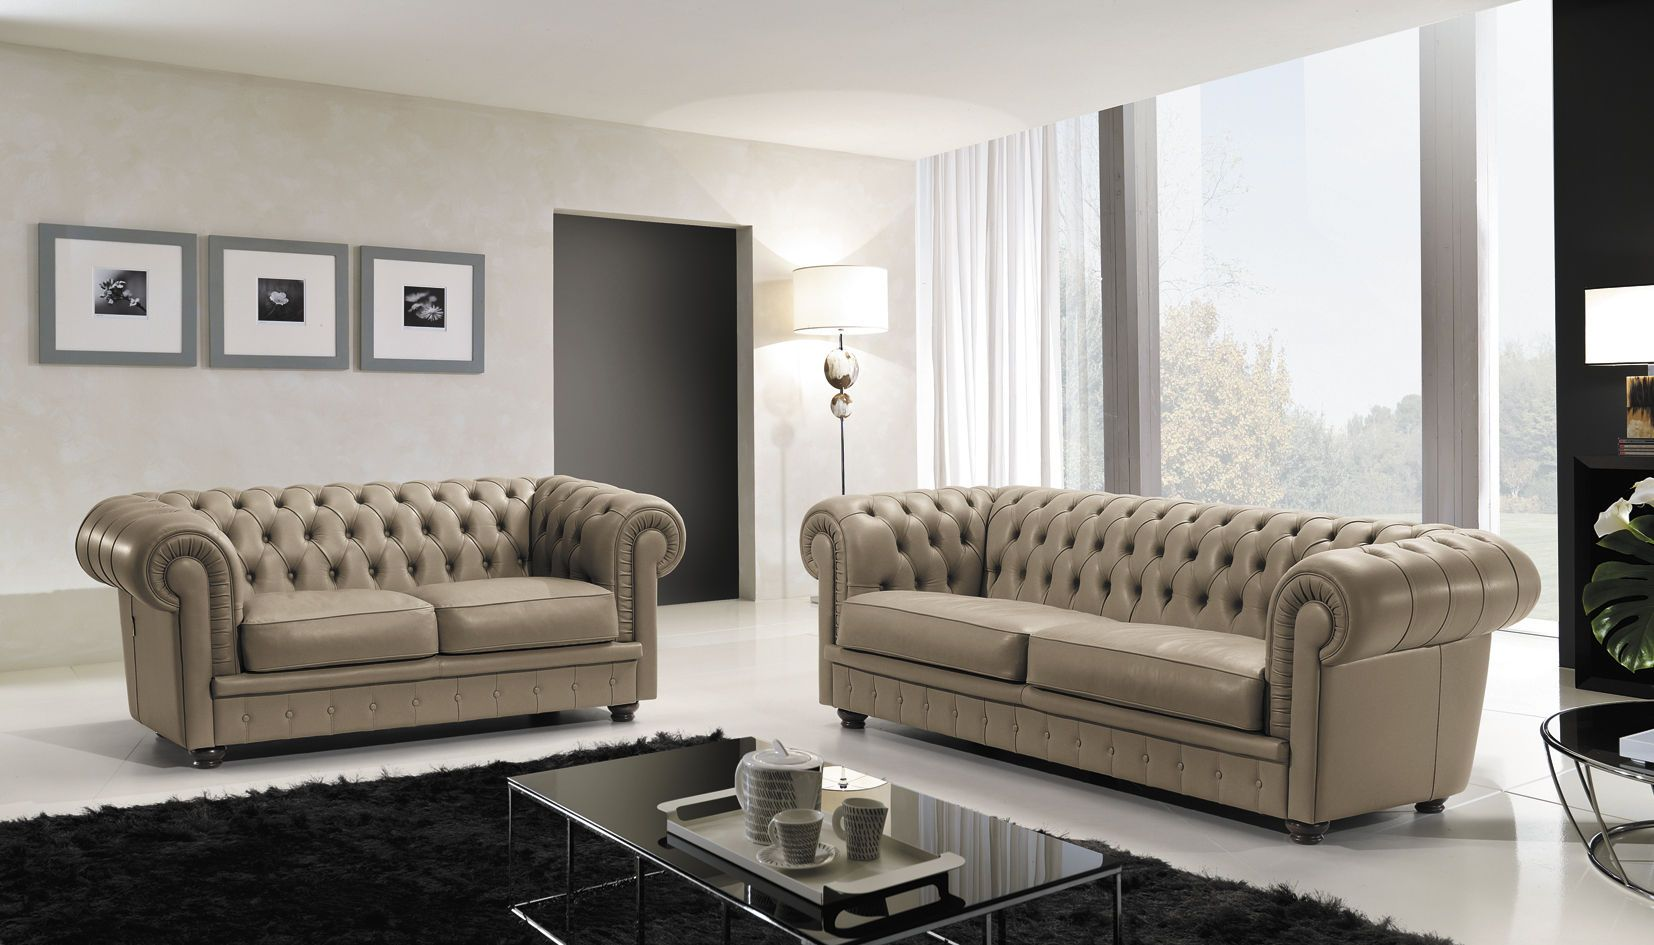 chesterfield sofa hermes maxdivani max divani maxdivani sofas pinterest max divani. Black Bedroom Furniture Sets. Home Design Ideas